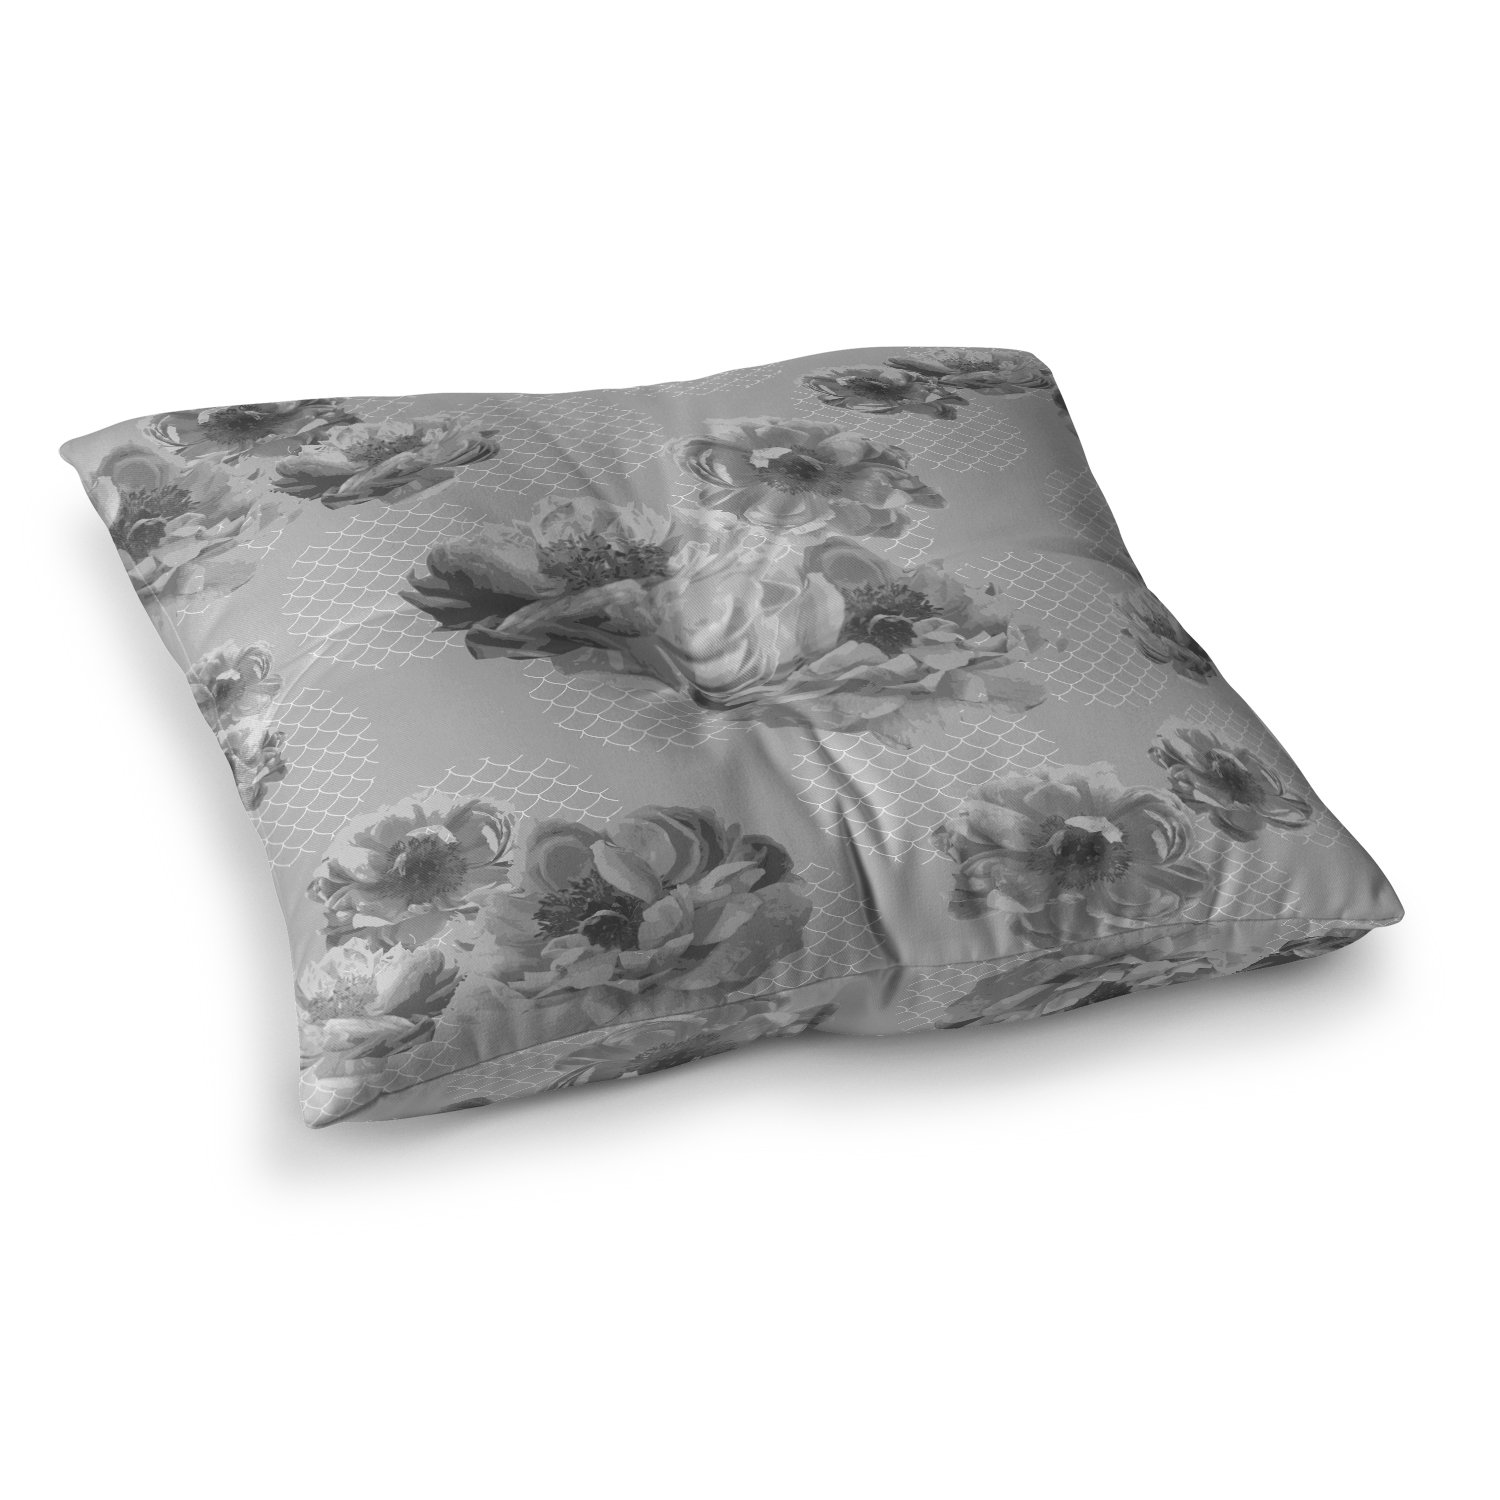 Kess InHouse Pellerina Design Lace Peony in Gray Grey Floral, 26\' x 26\' Square Floor Pillow